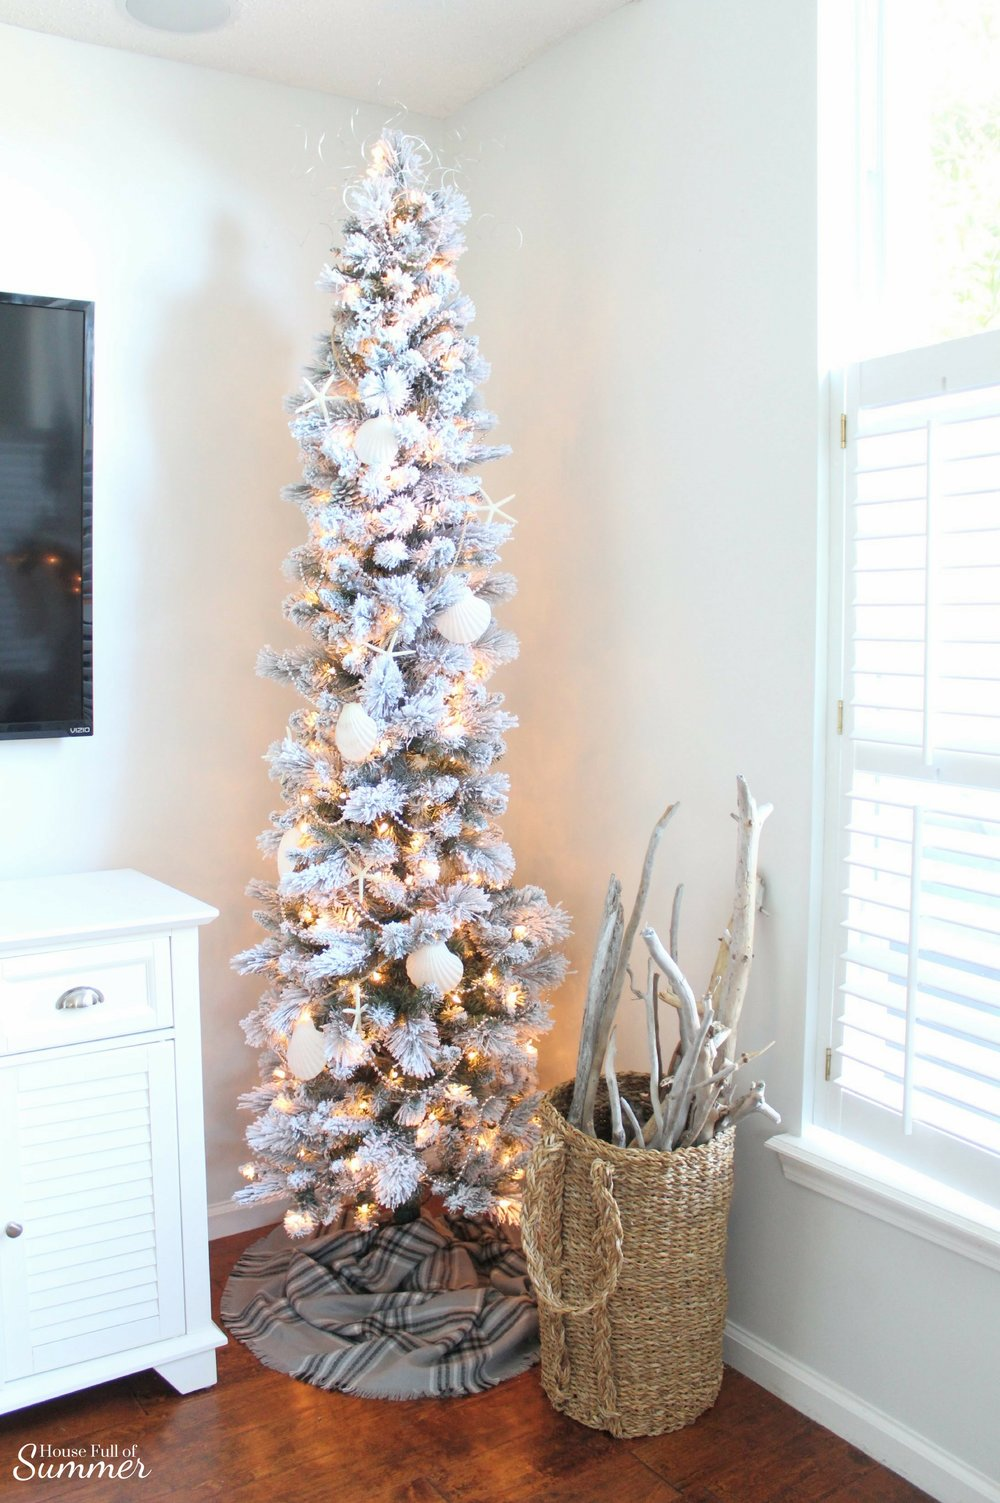 Classy Christmas Home Tour {Part Two} | House Full of Summer blog - flocked pencil tree, coastal christmas tree decorations, seashell garland, beaded garland